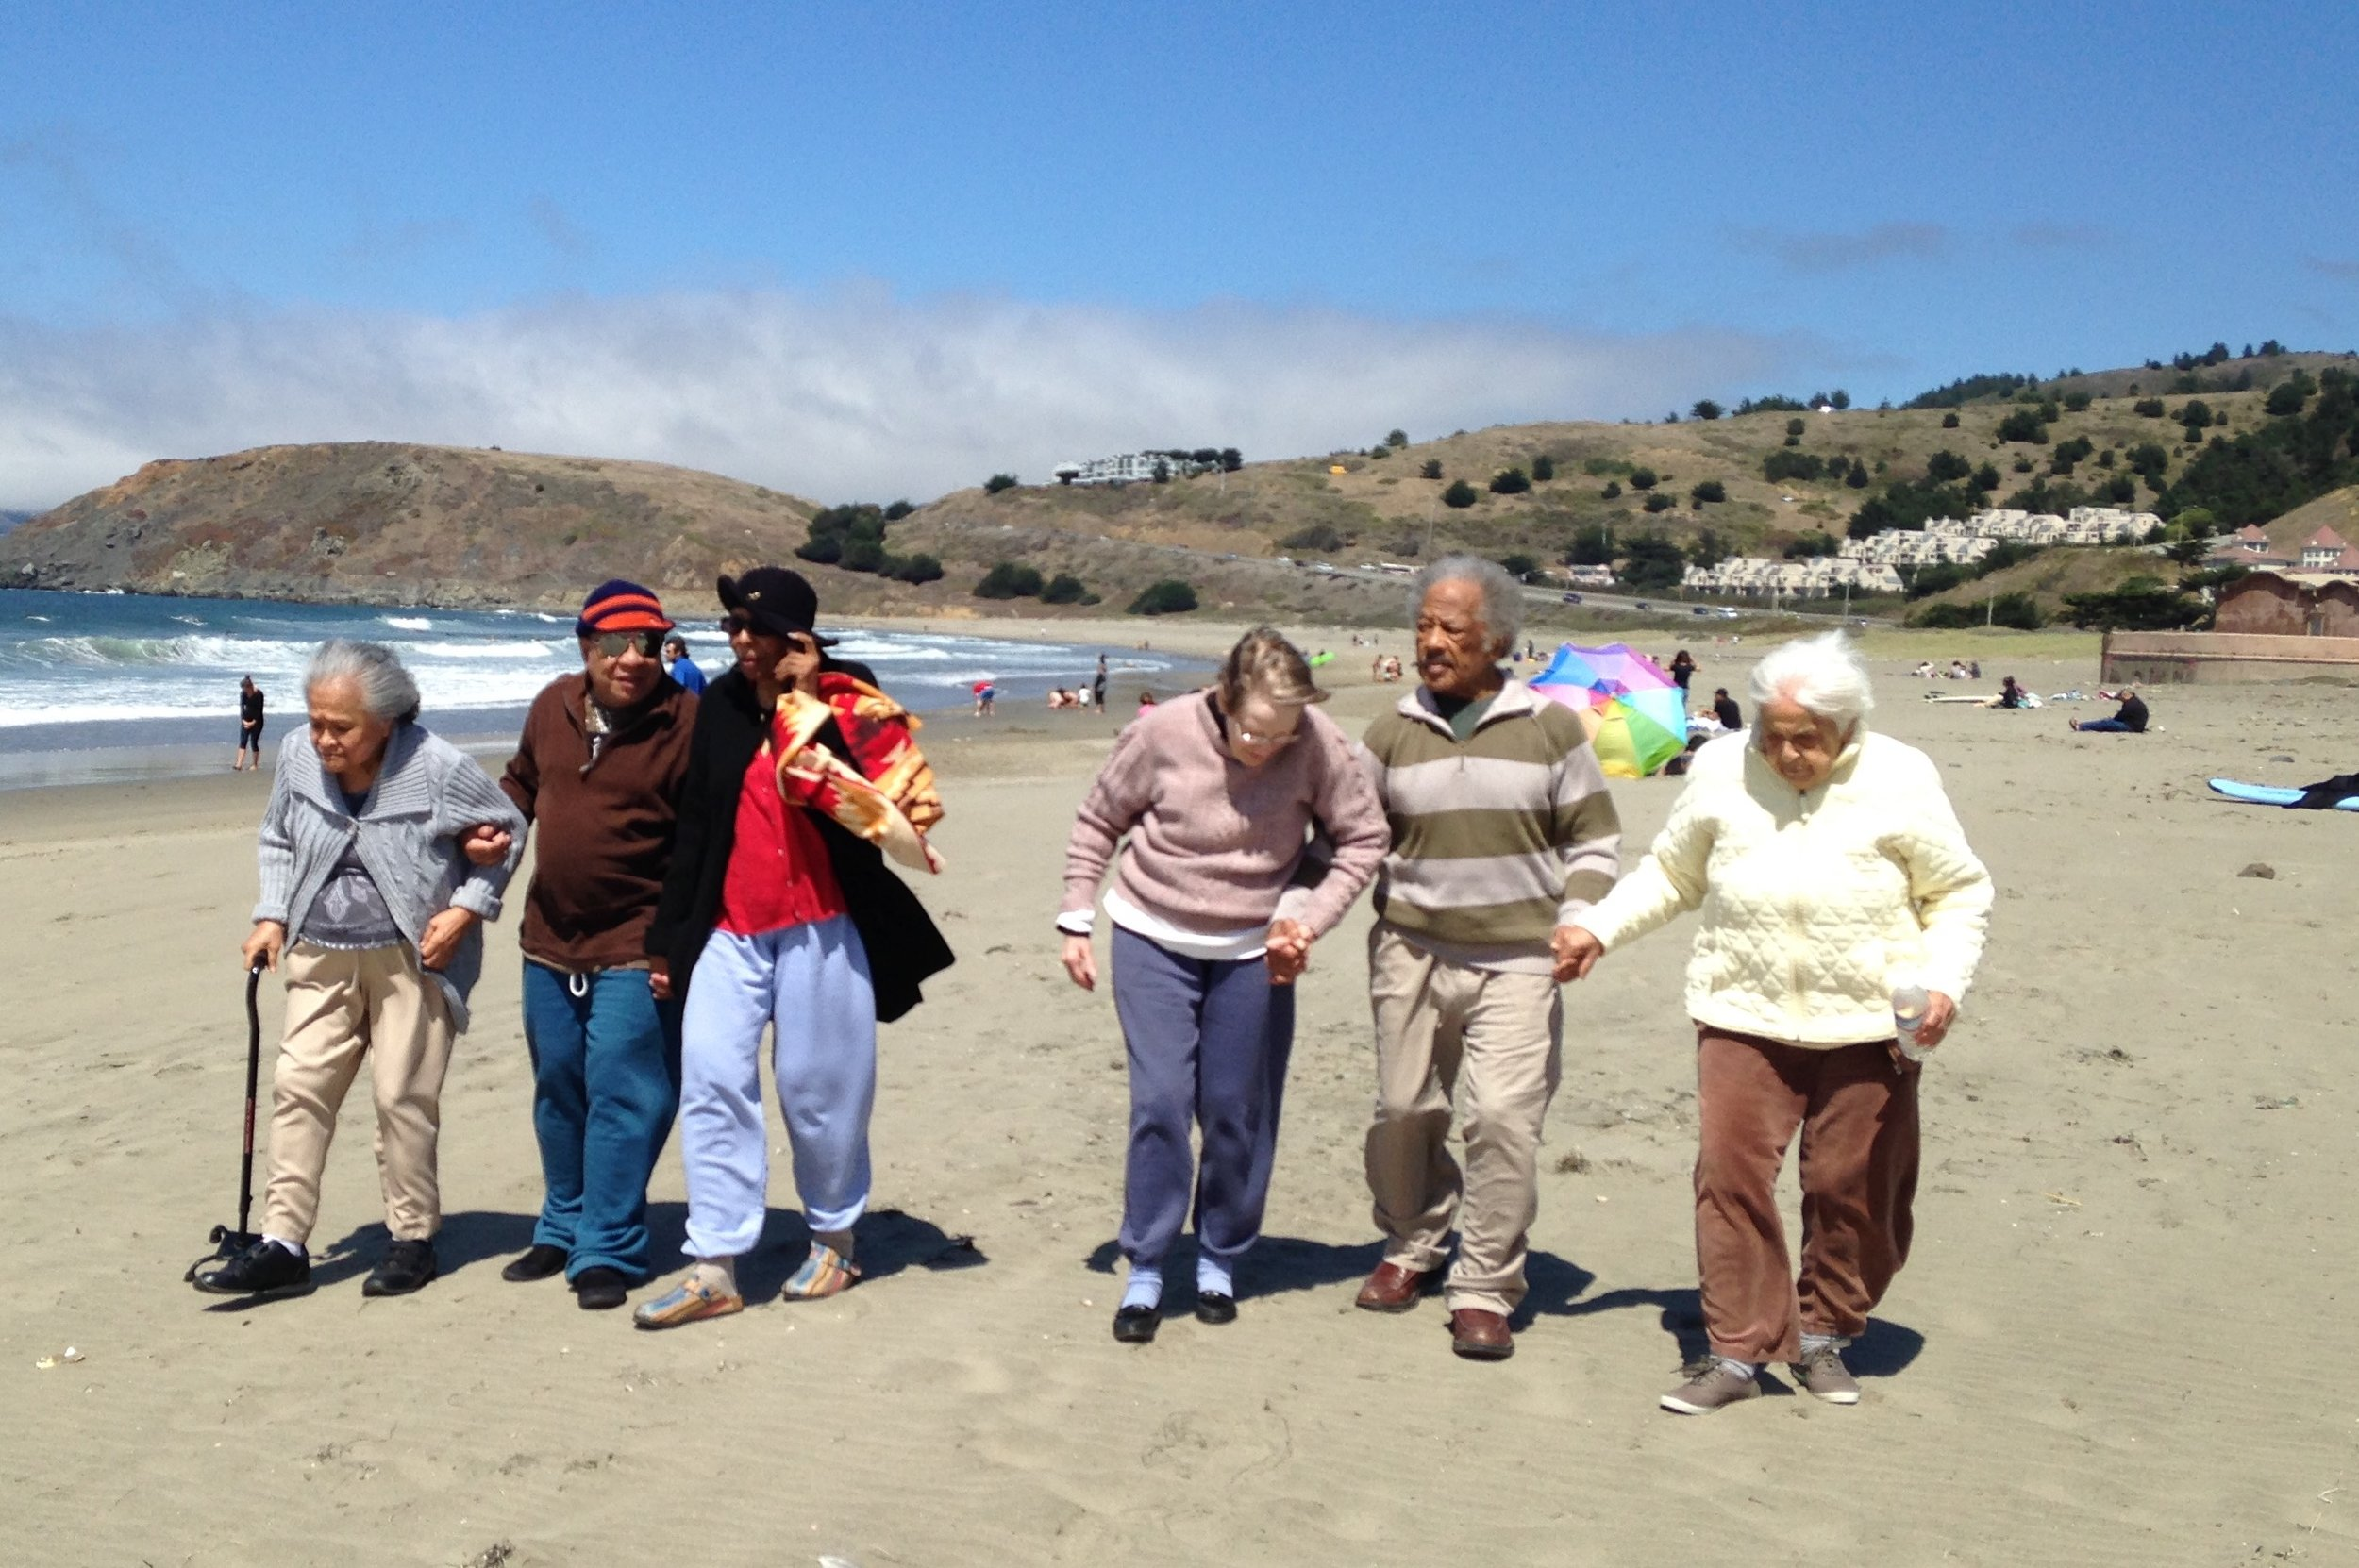 Sunvalley Chateau Pacifica senior care residents at the beach.